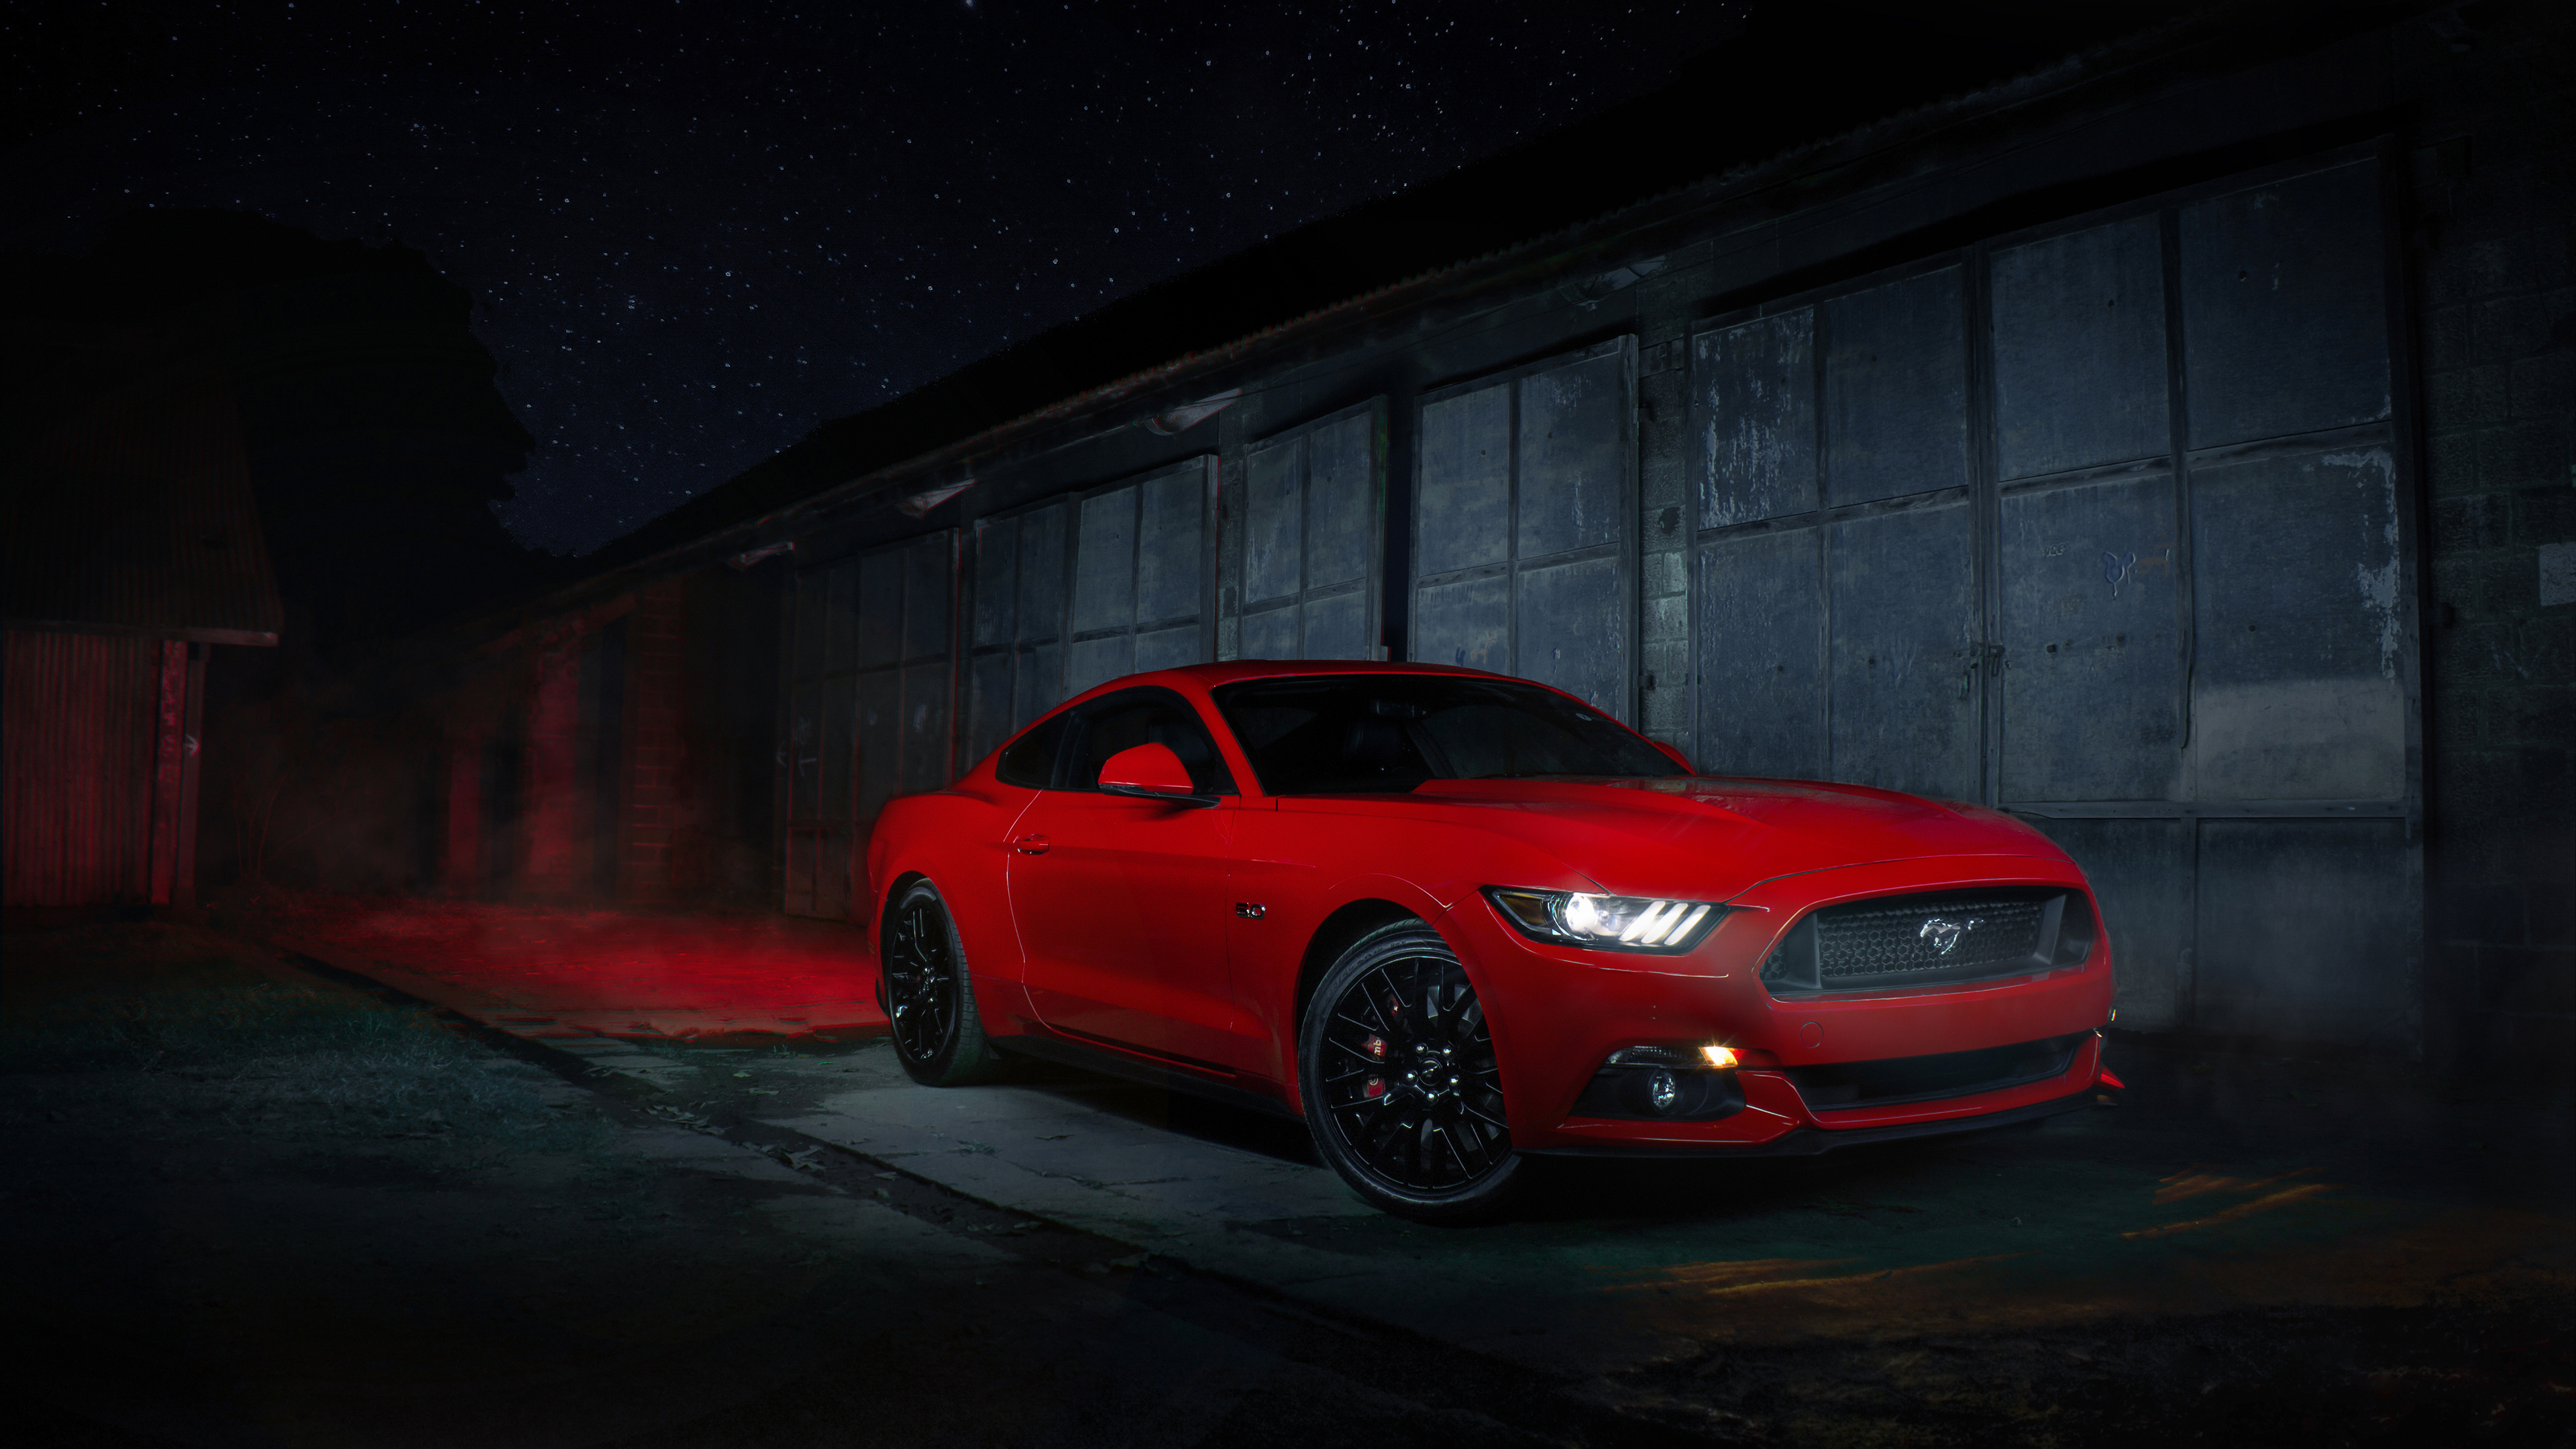 2560x1440 Ford Mustang 4k 1440p Resolution Hd 4k Wallpapers Images Backgrounds Photos And Pictures